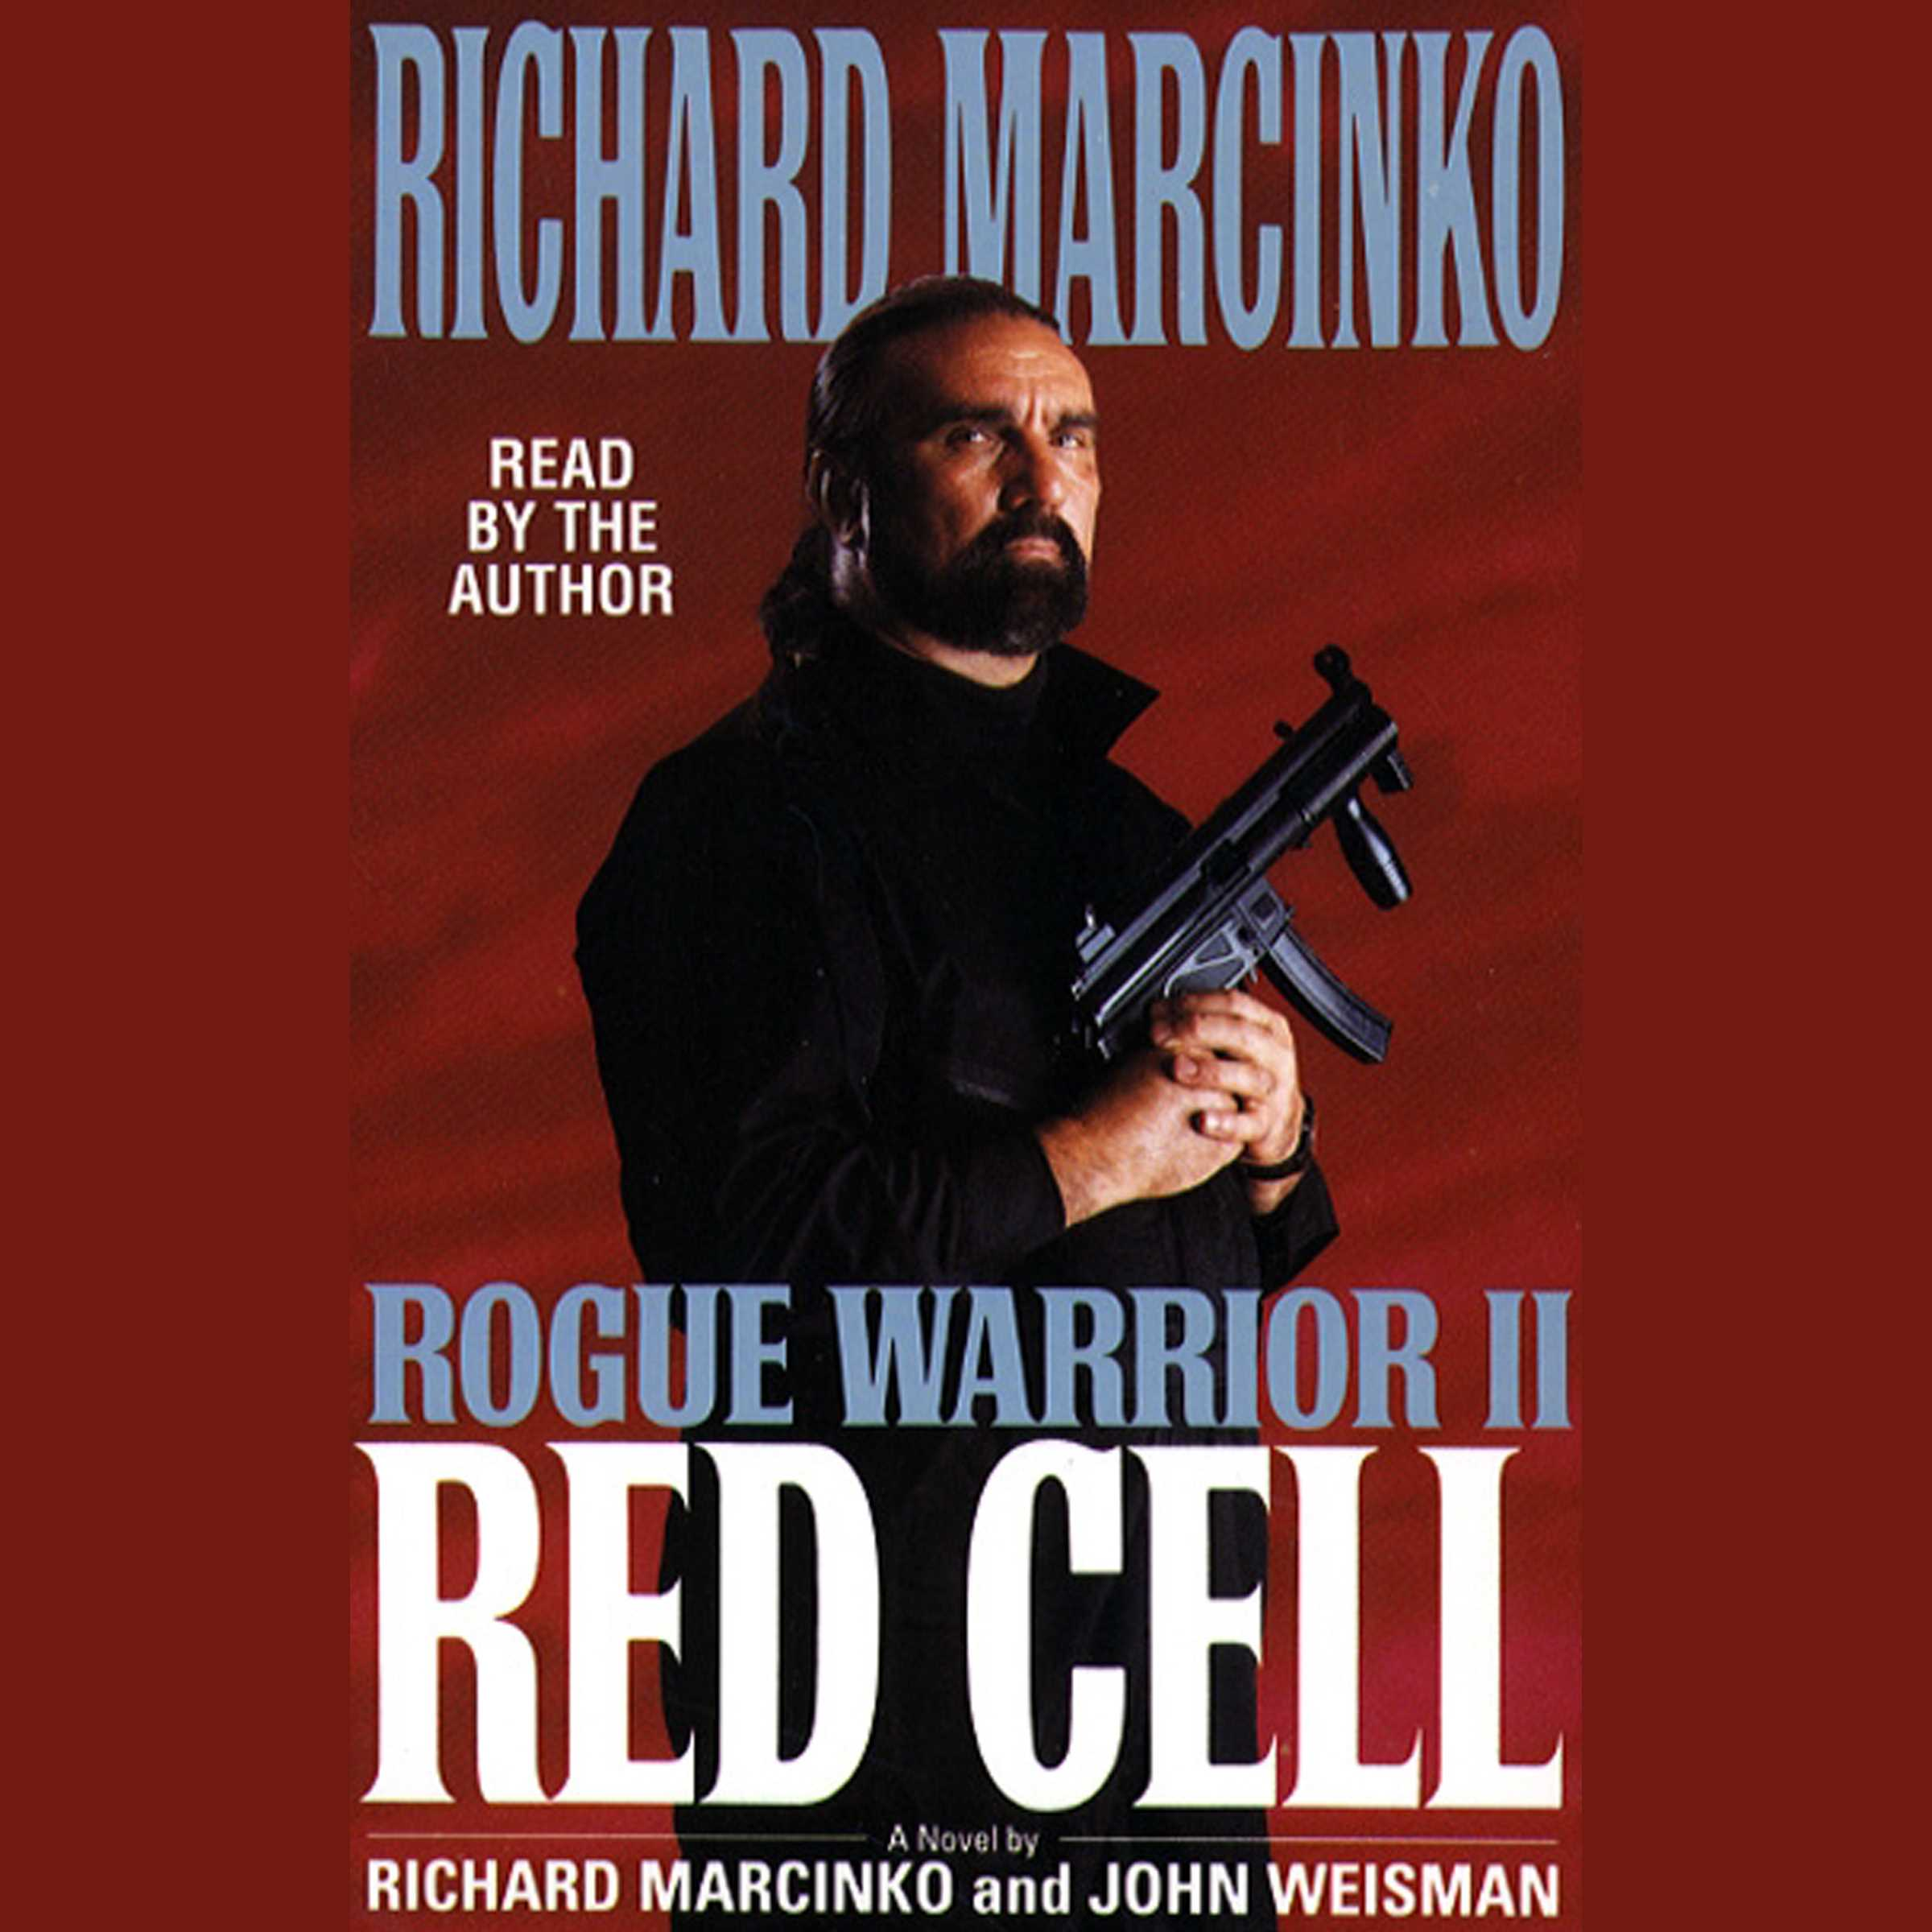 Rogue warrior ii red cell 9780743545891 hr